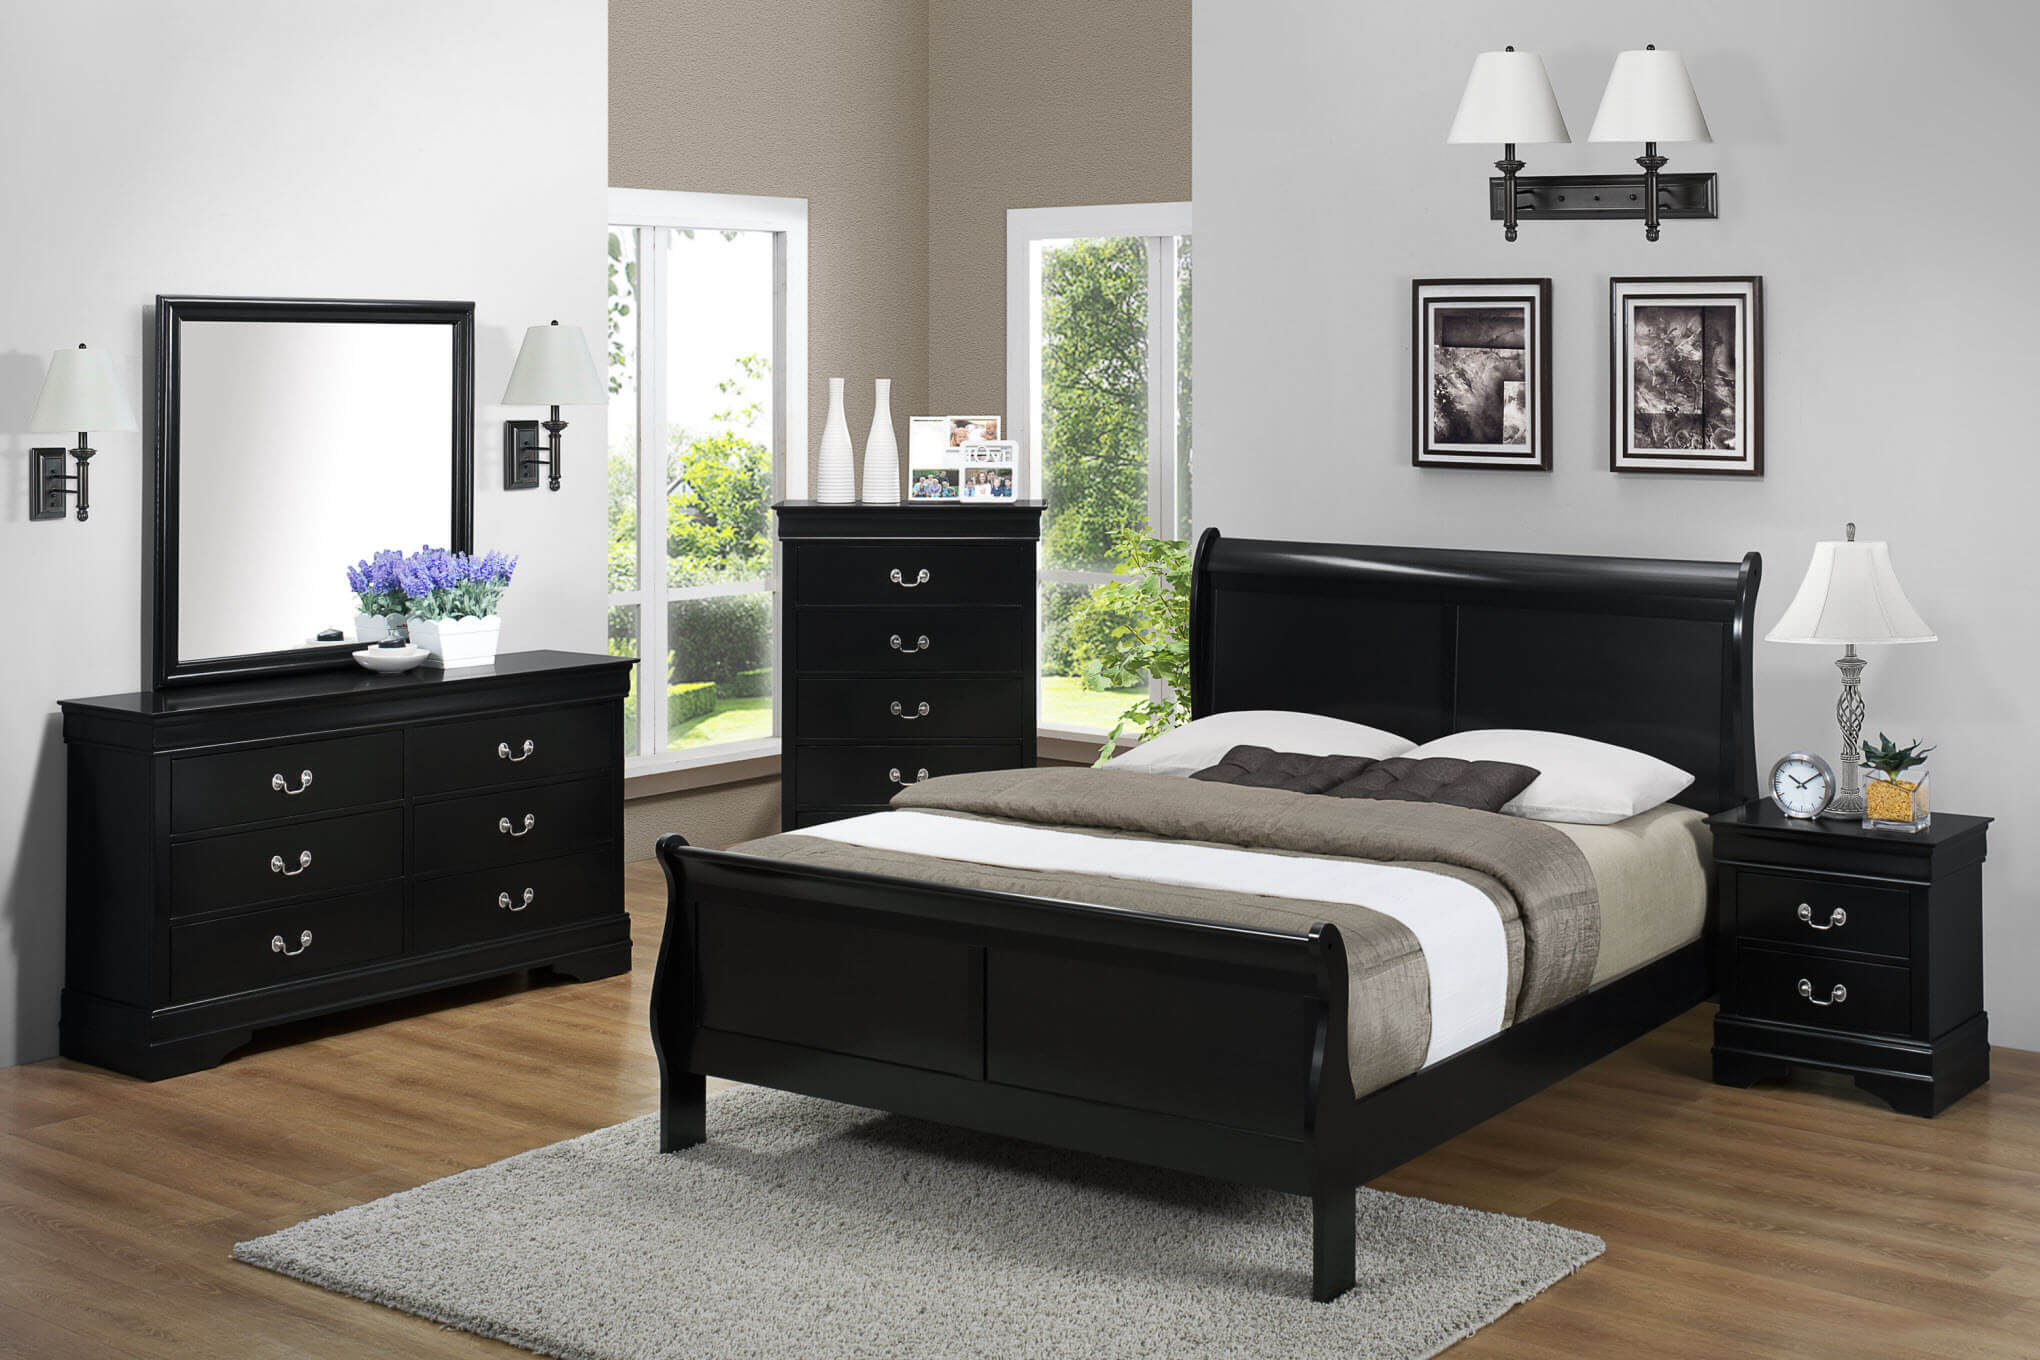 Black Louis Philip Bedroom Set Kids Bedroom Sets